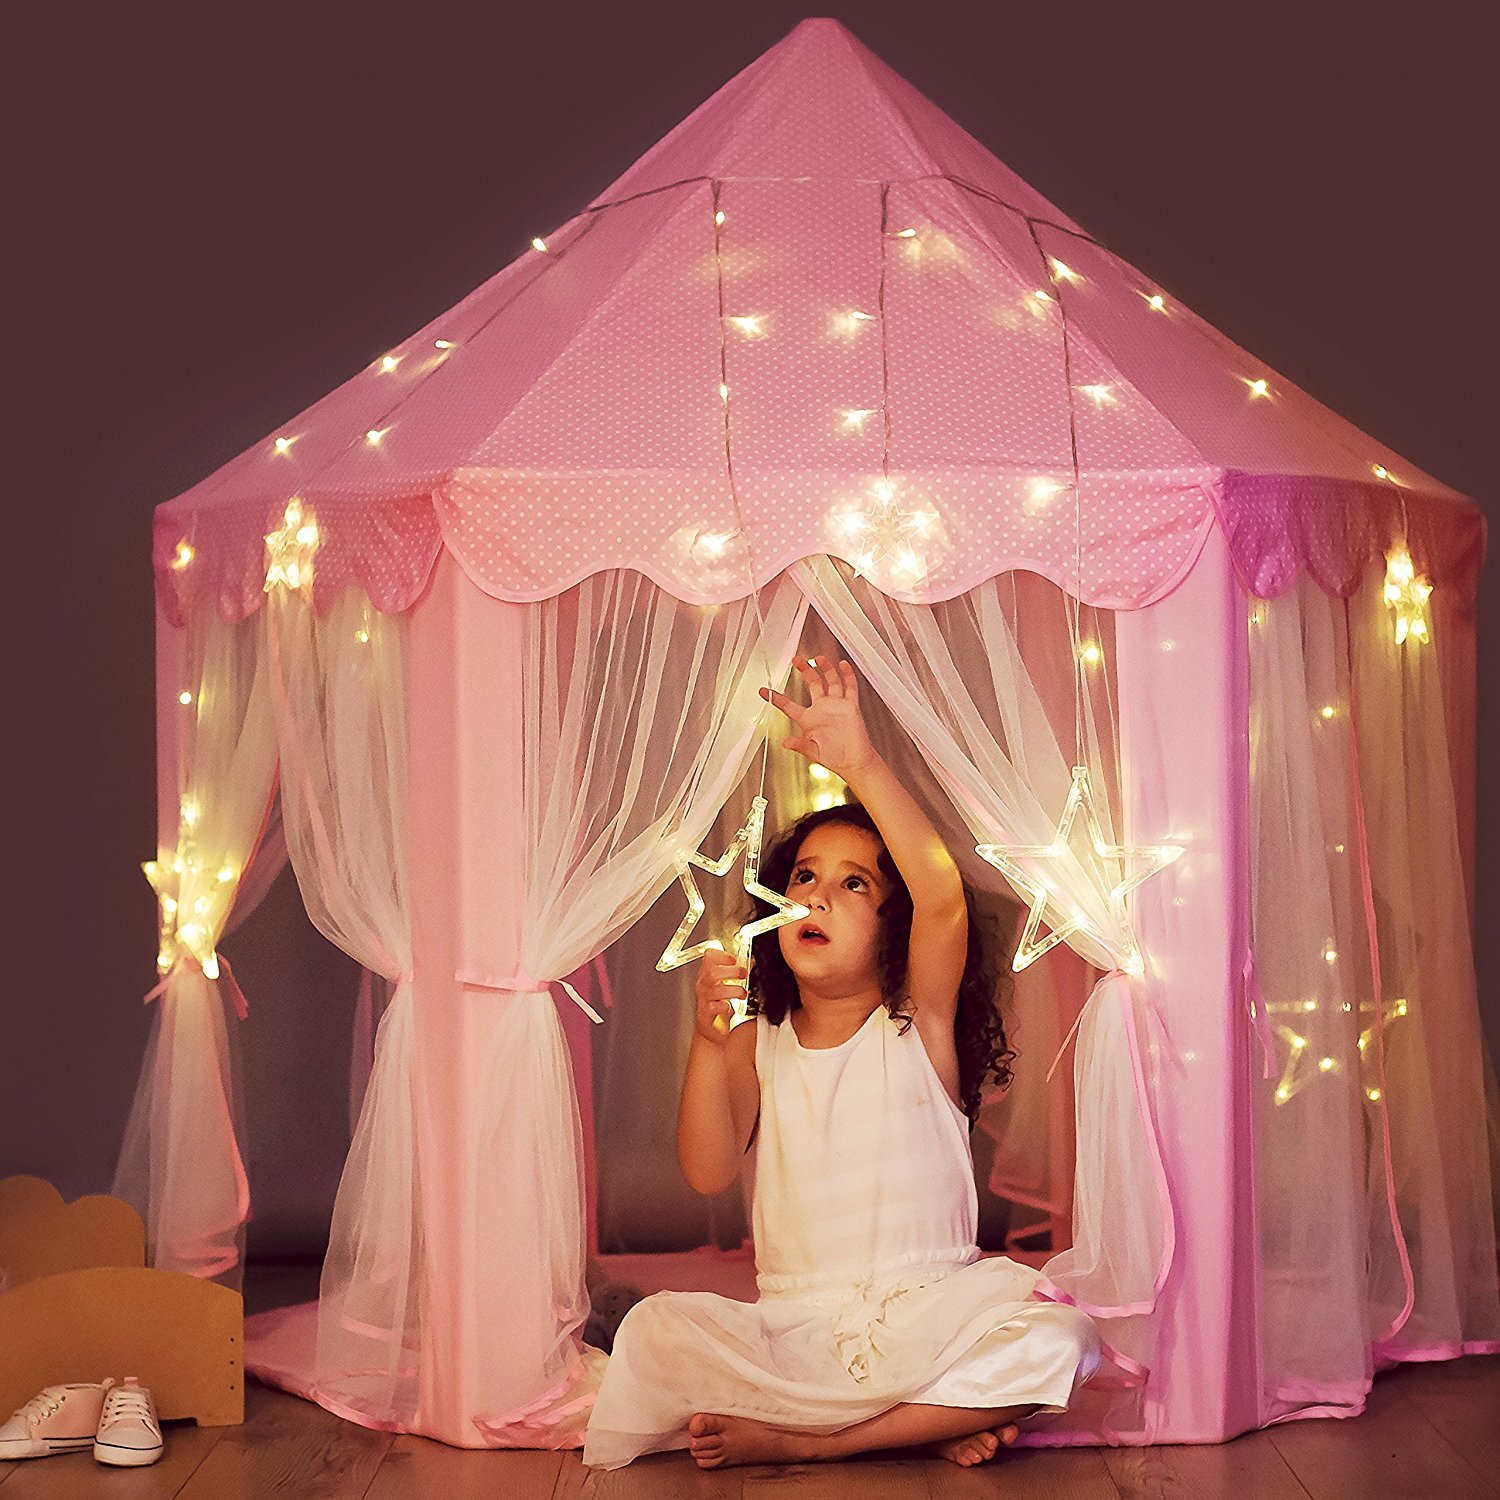 Princess Castle Tent with Large Star Lights String, Durable Girls Play Tent for Indoor and Outdoor Games, Stimulate Pretend and Imaginative Play, Have Fun in the Cute Pink Princess Tent with Lights Perfectto PrincessTent_Pink_LEDLarge